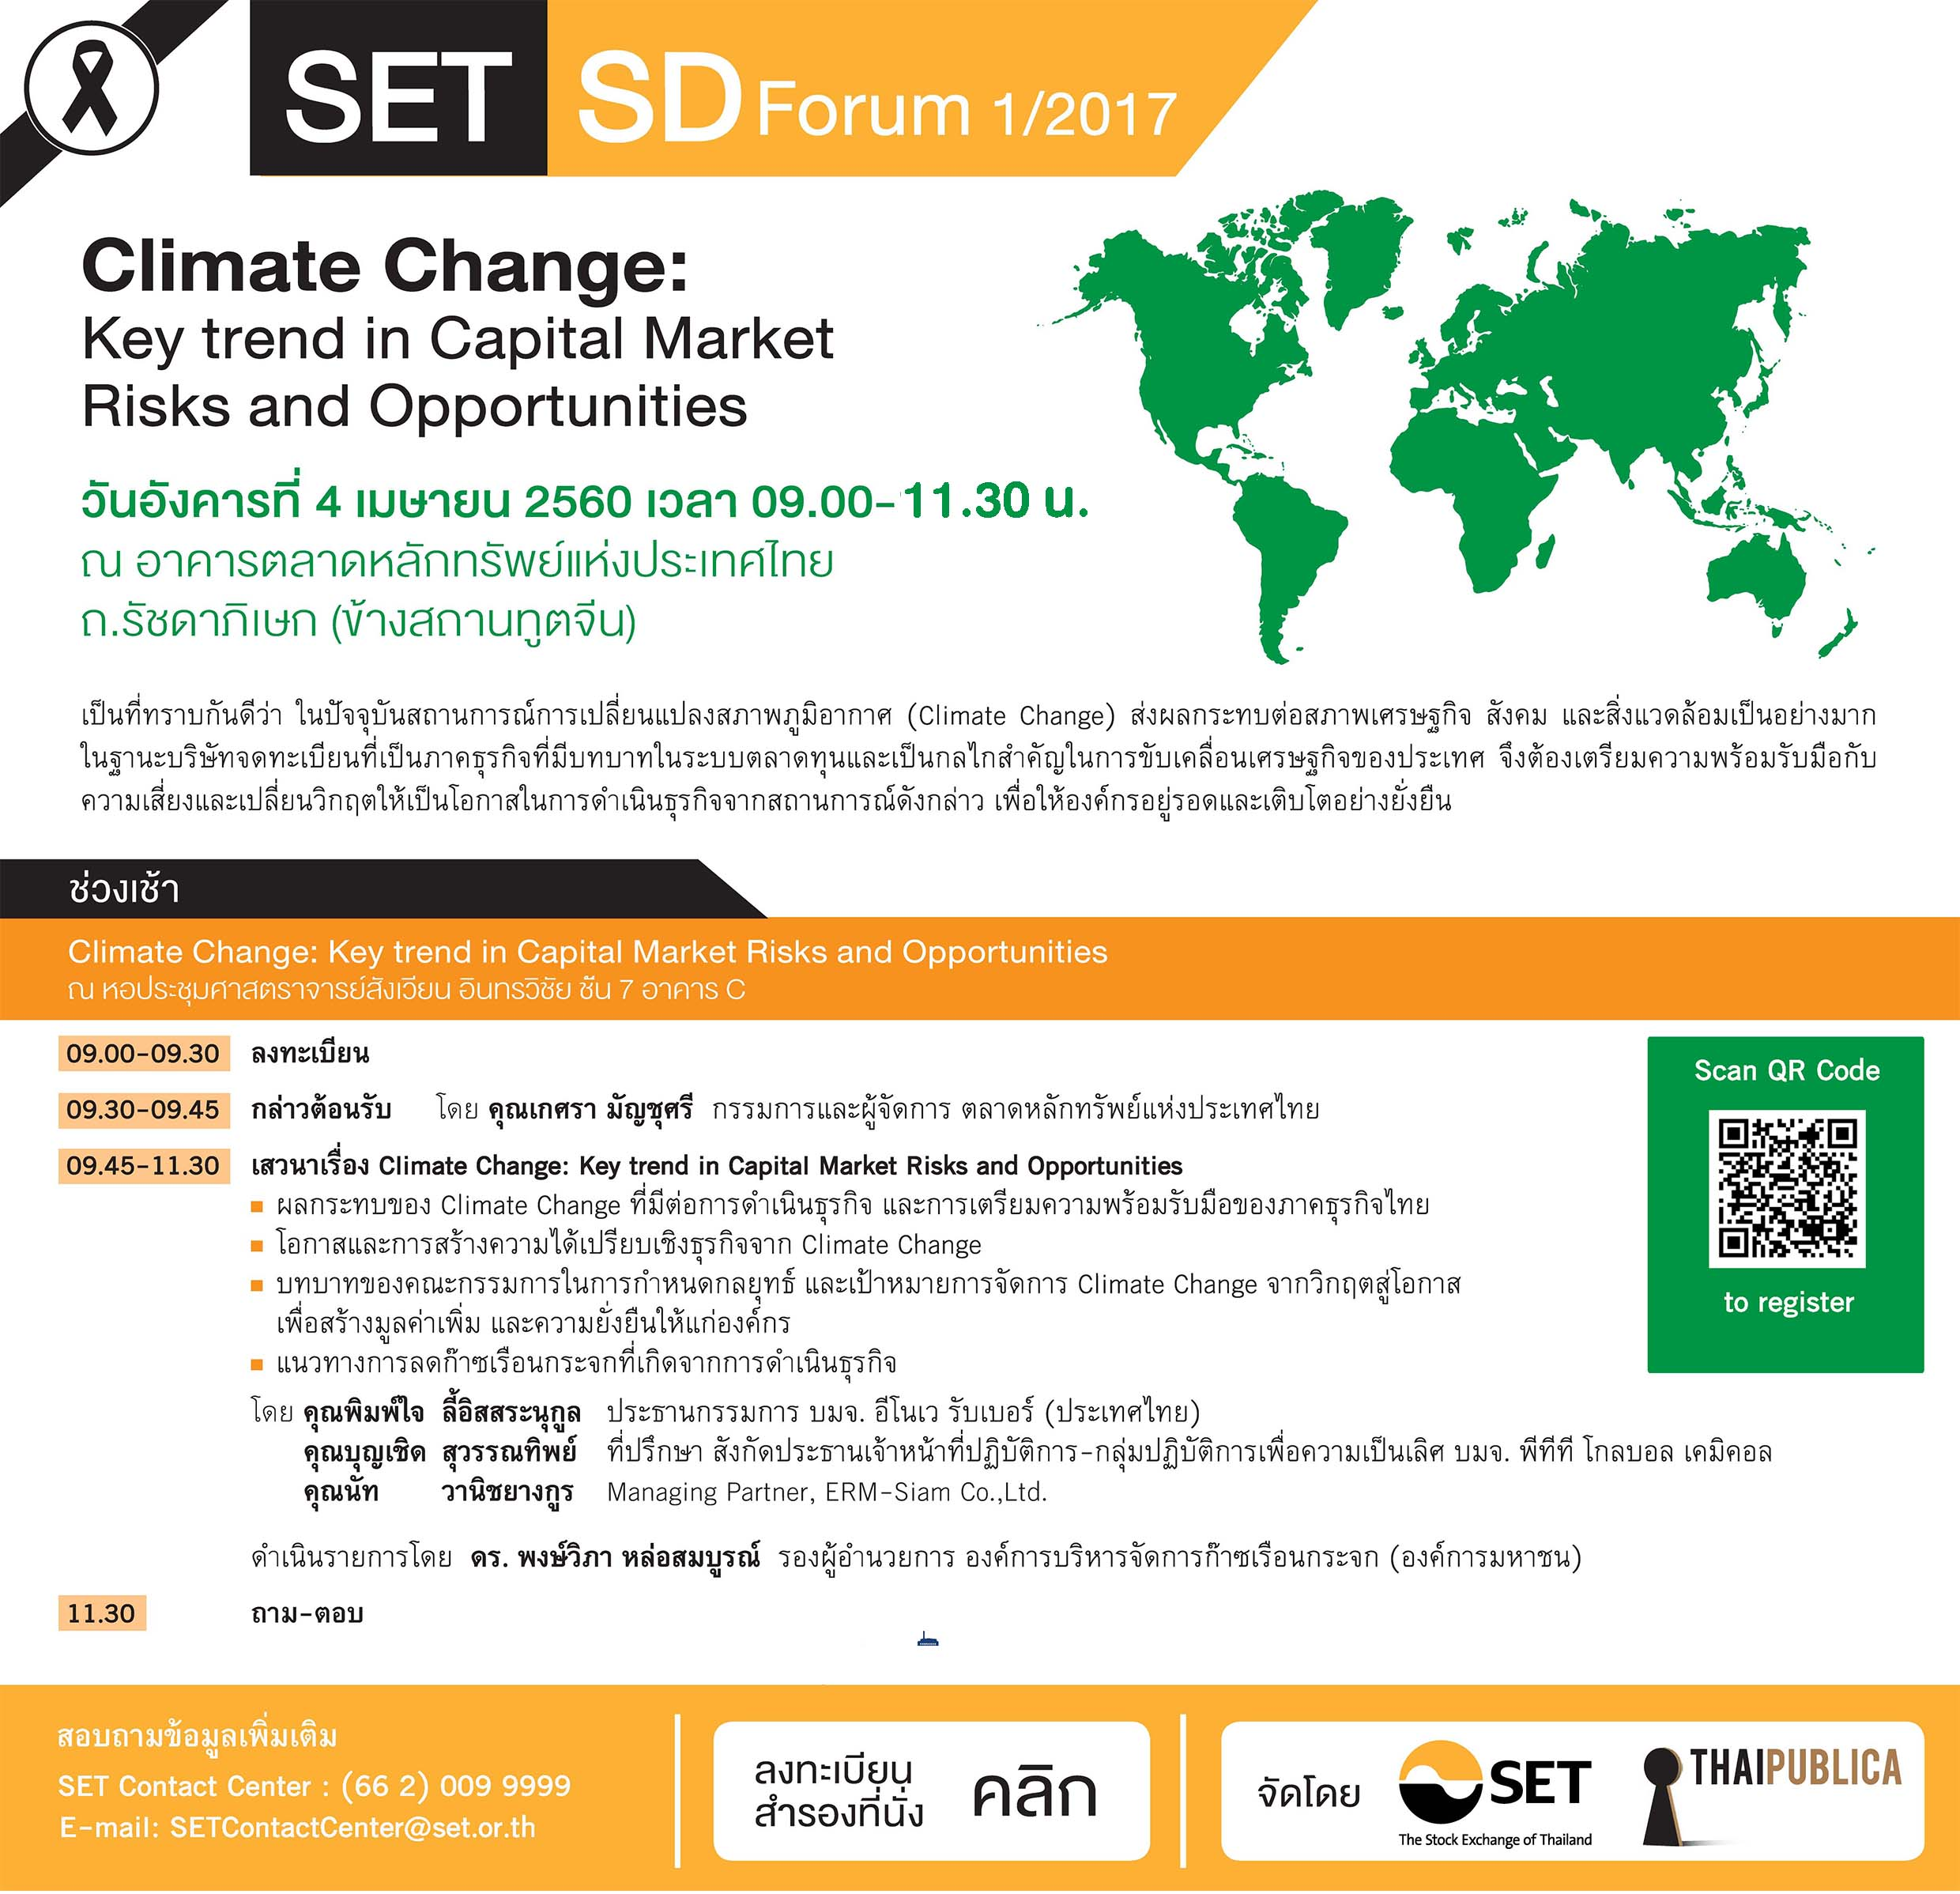 SET SD Forum 1/2017 หัวข้อ Climate Change